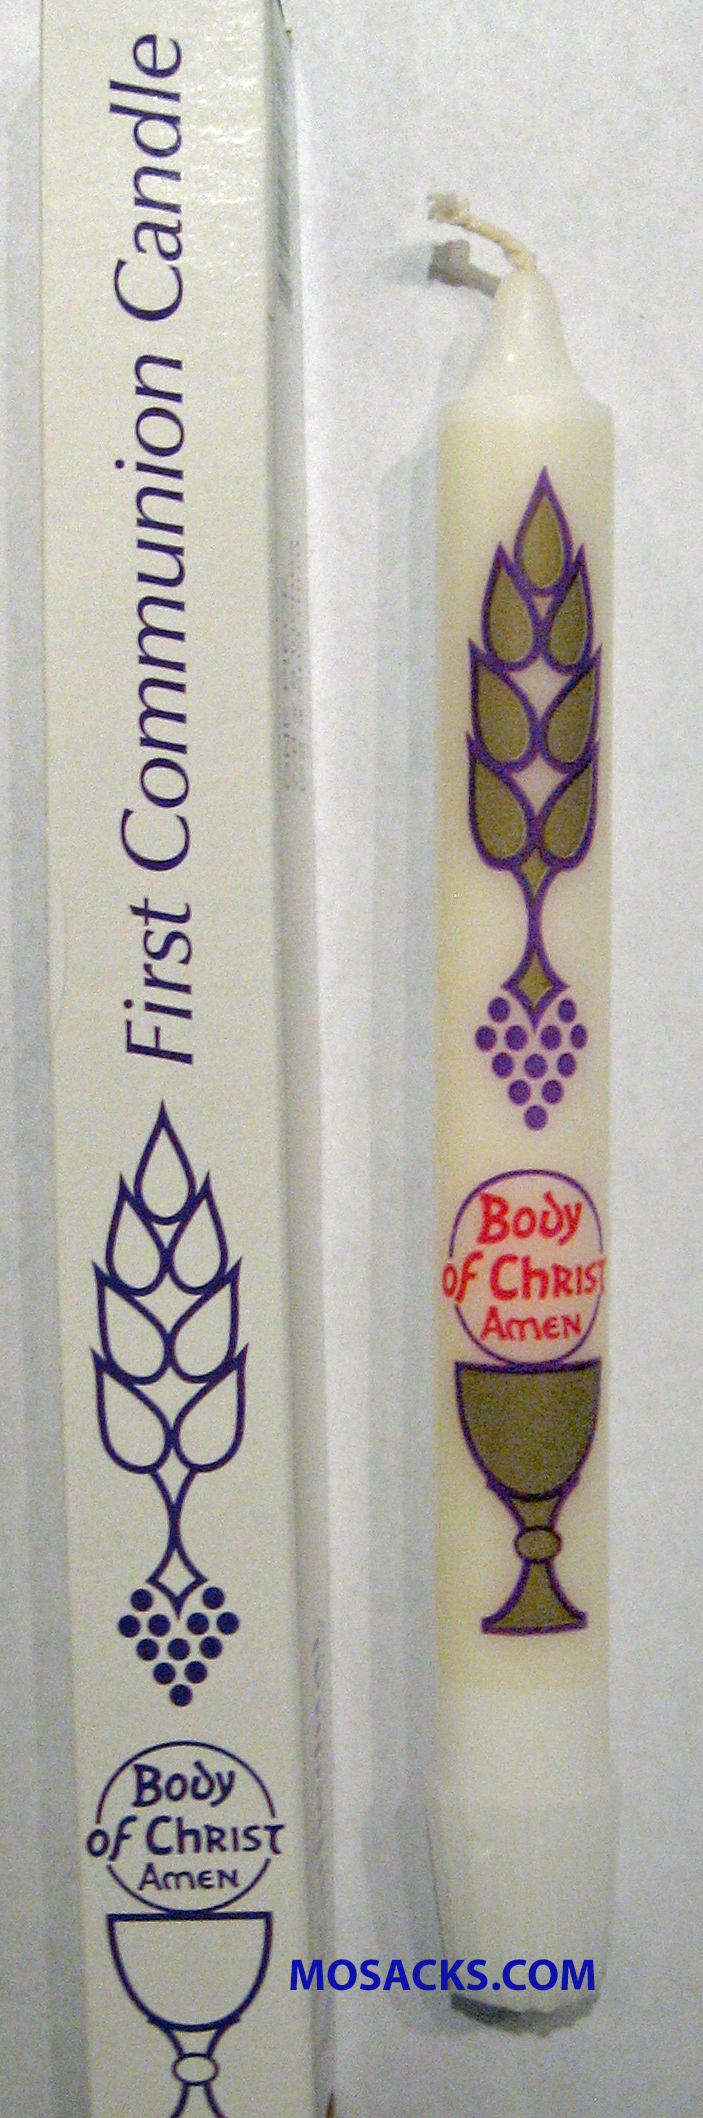 "First Communion Body of Christ Sacramental Candle 7/8 x 8"" 84200701"